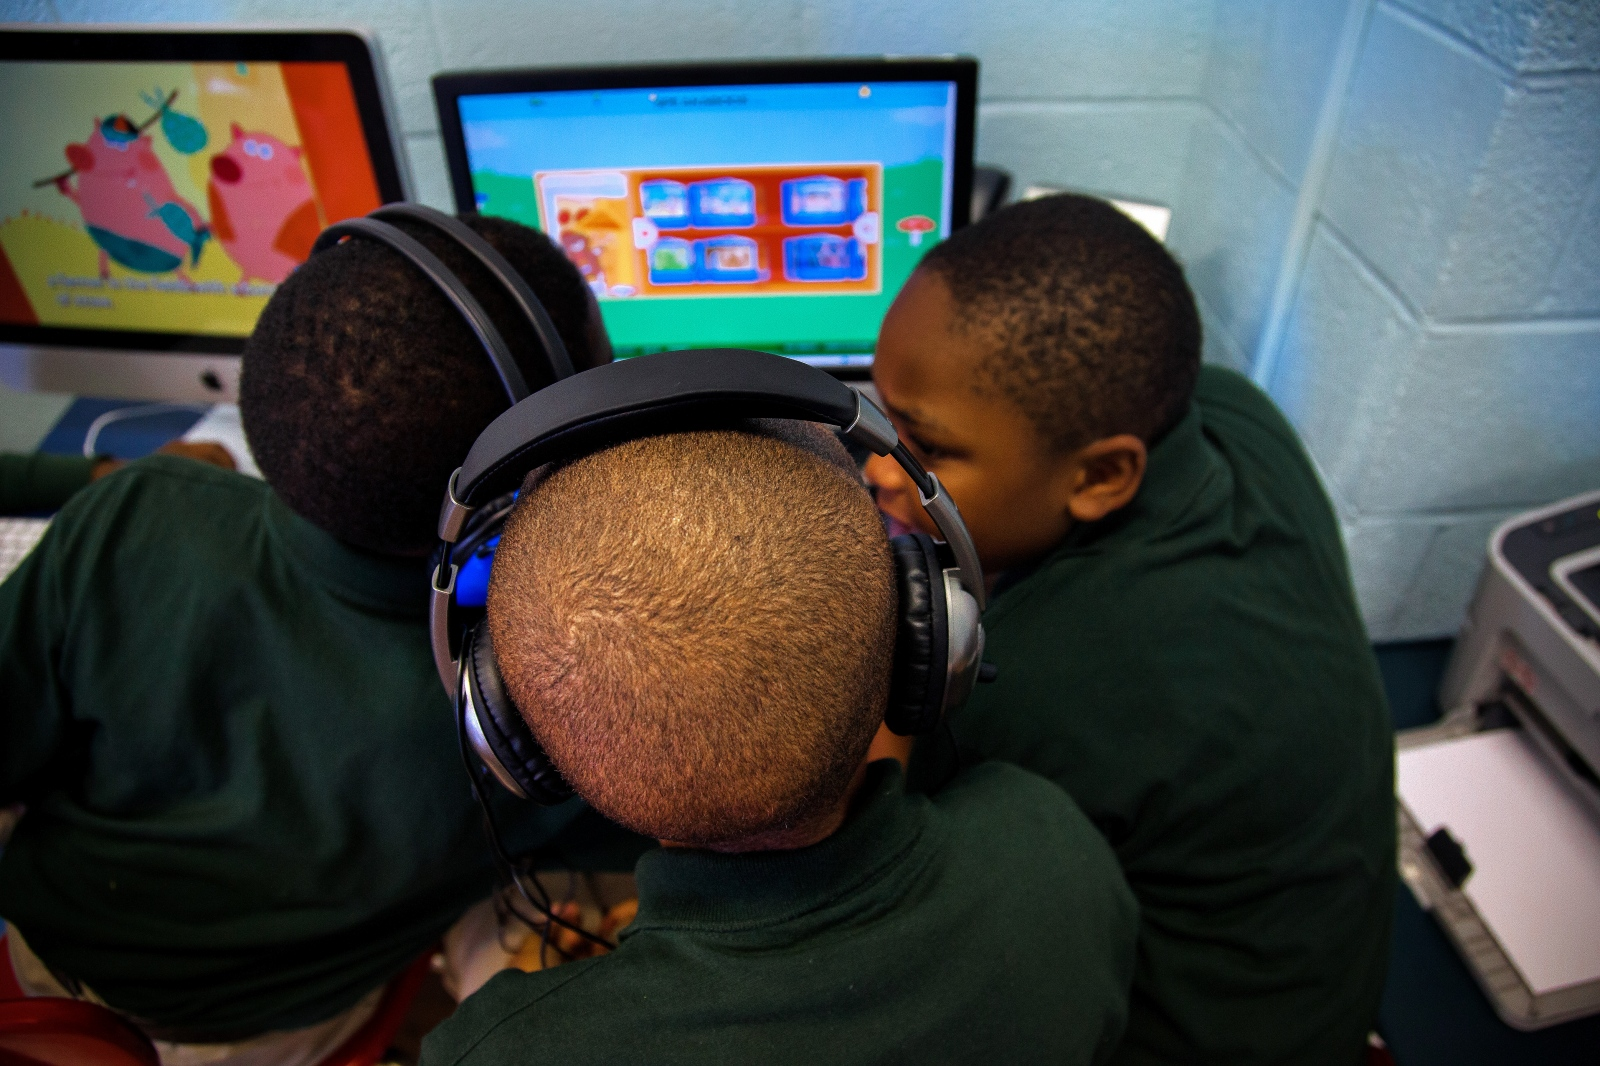 Three students sit together and solve a reading game on Stanton Elementary's computers during 'centers' time, a period when student go on their own to different areas of the classroom to complete lessons.